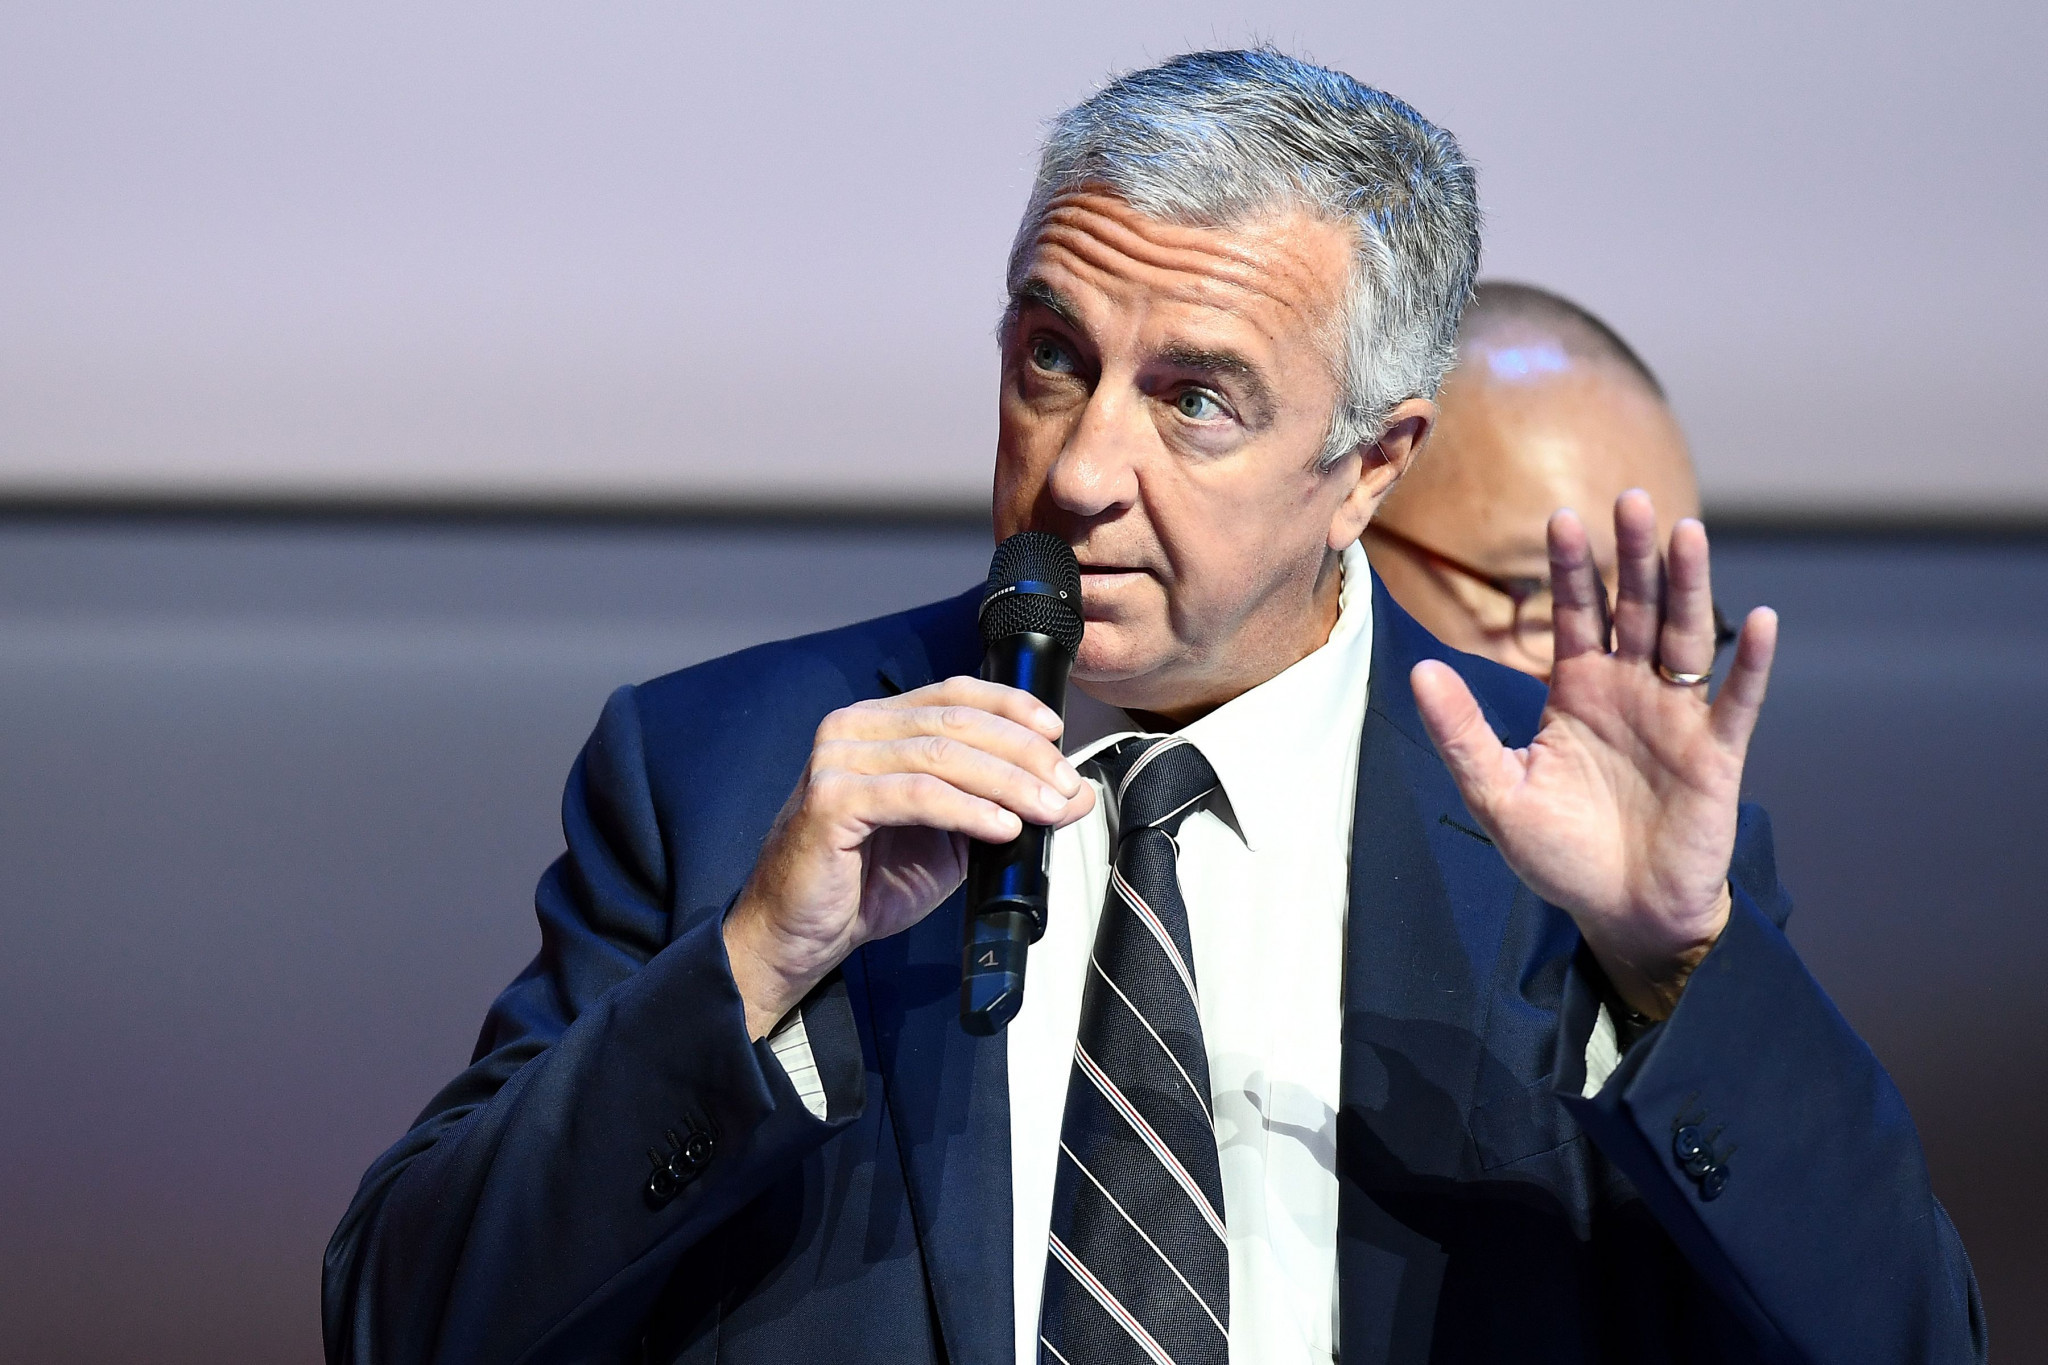 """Tardif claims election as IIHF President shows """"desire for change"""""""